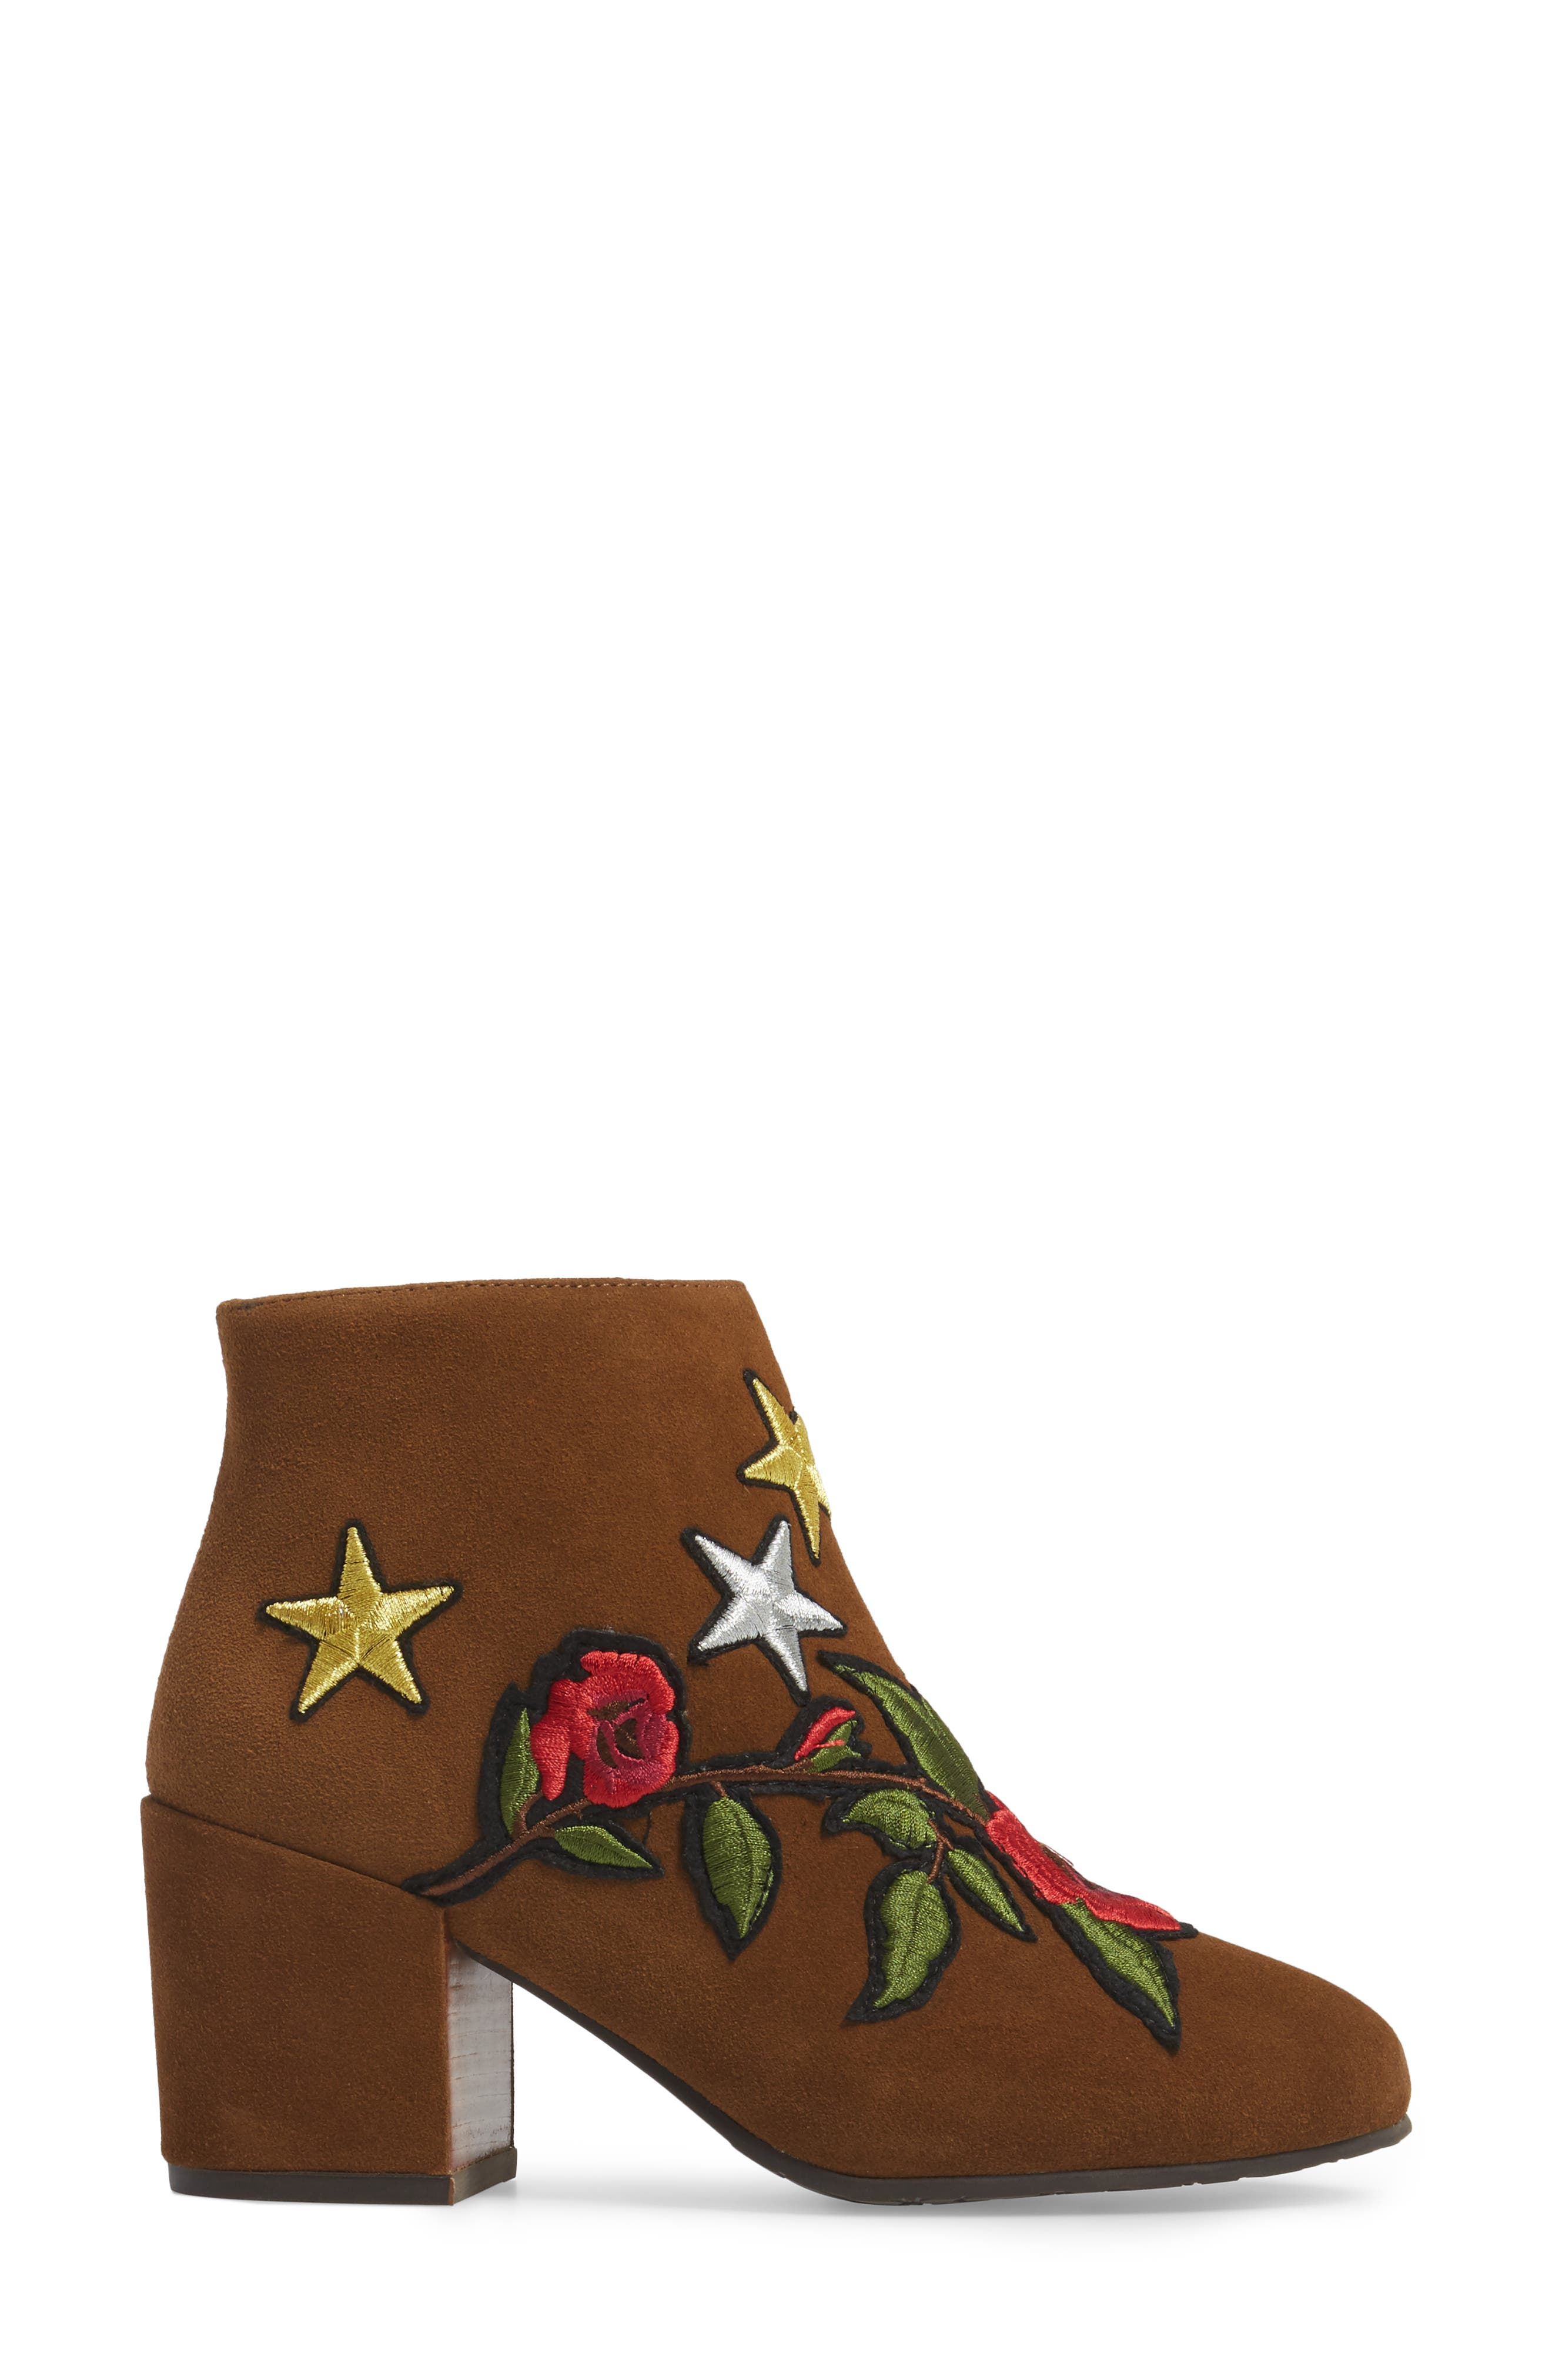 GENTLE SOULS BY KENNETH COLE, Blaise Patches Bootie, Alternate thumbnail 3, color, WALNUT SUEDE